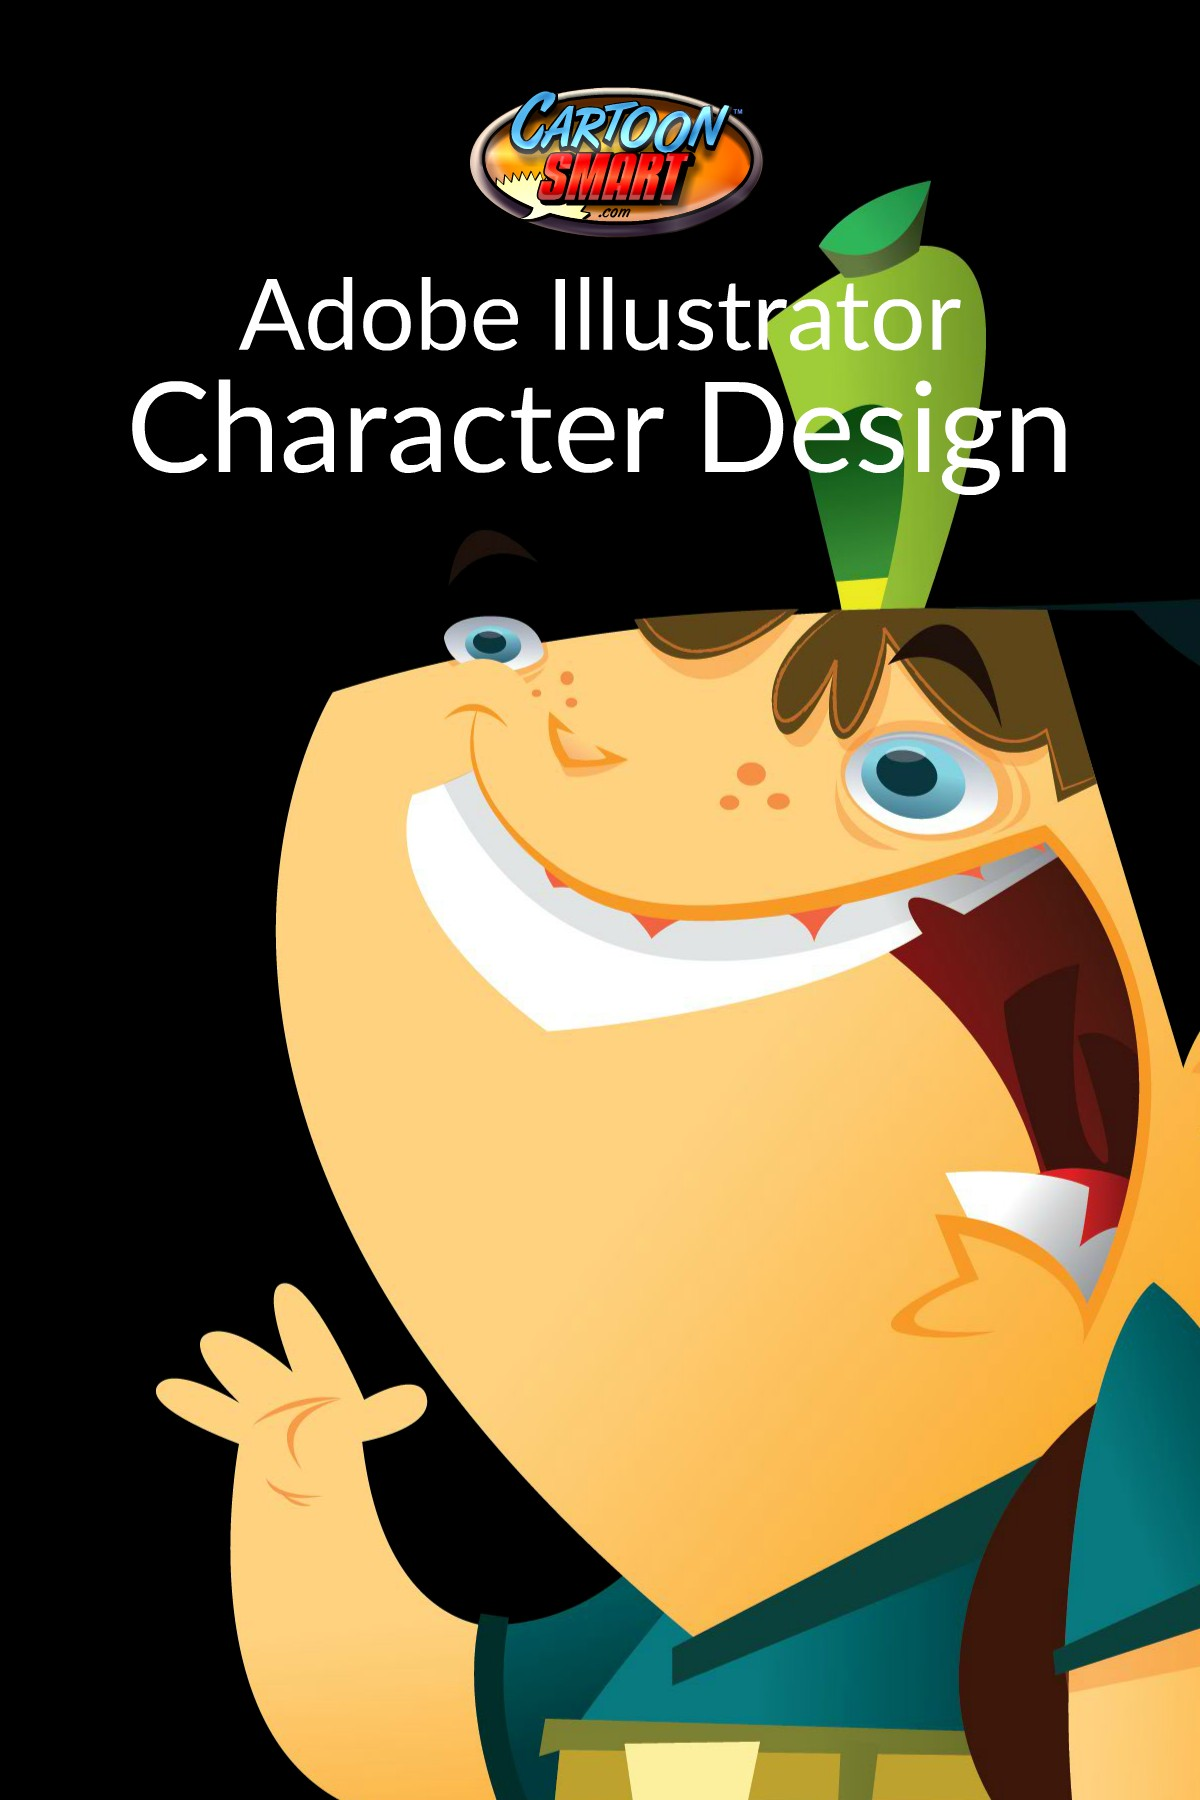 Character Design Tutorials In Illustrator : Adobe illustrator character design subscriber access